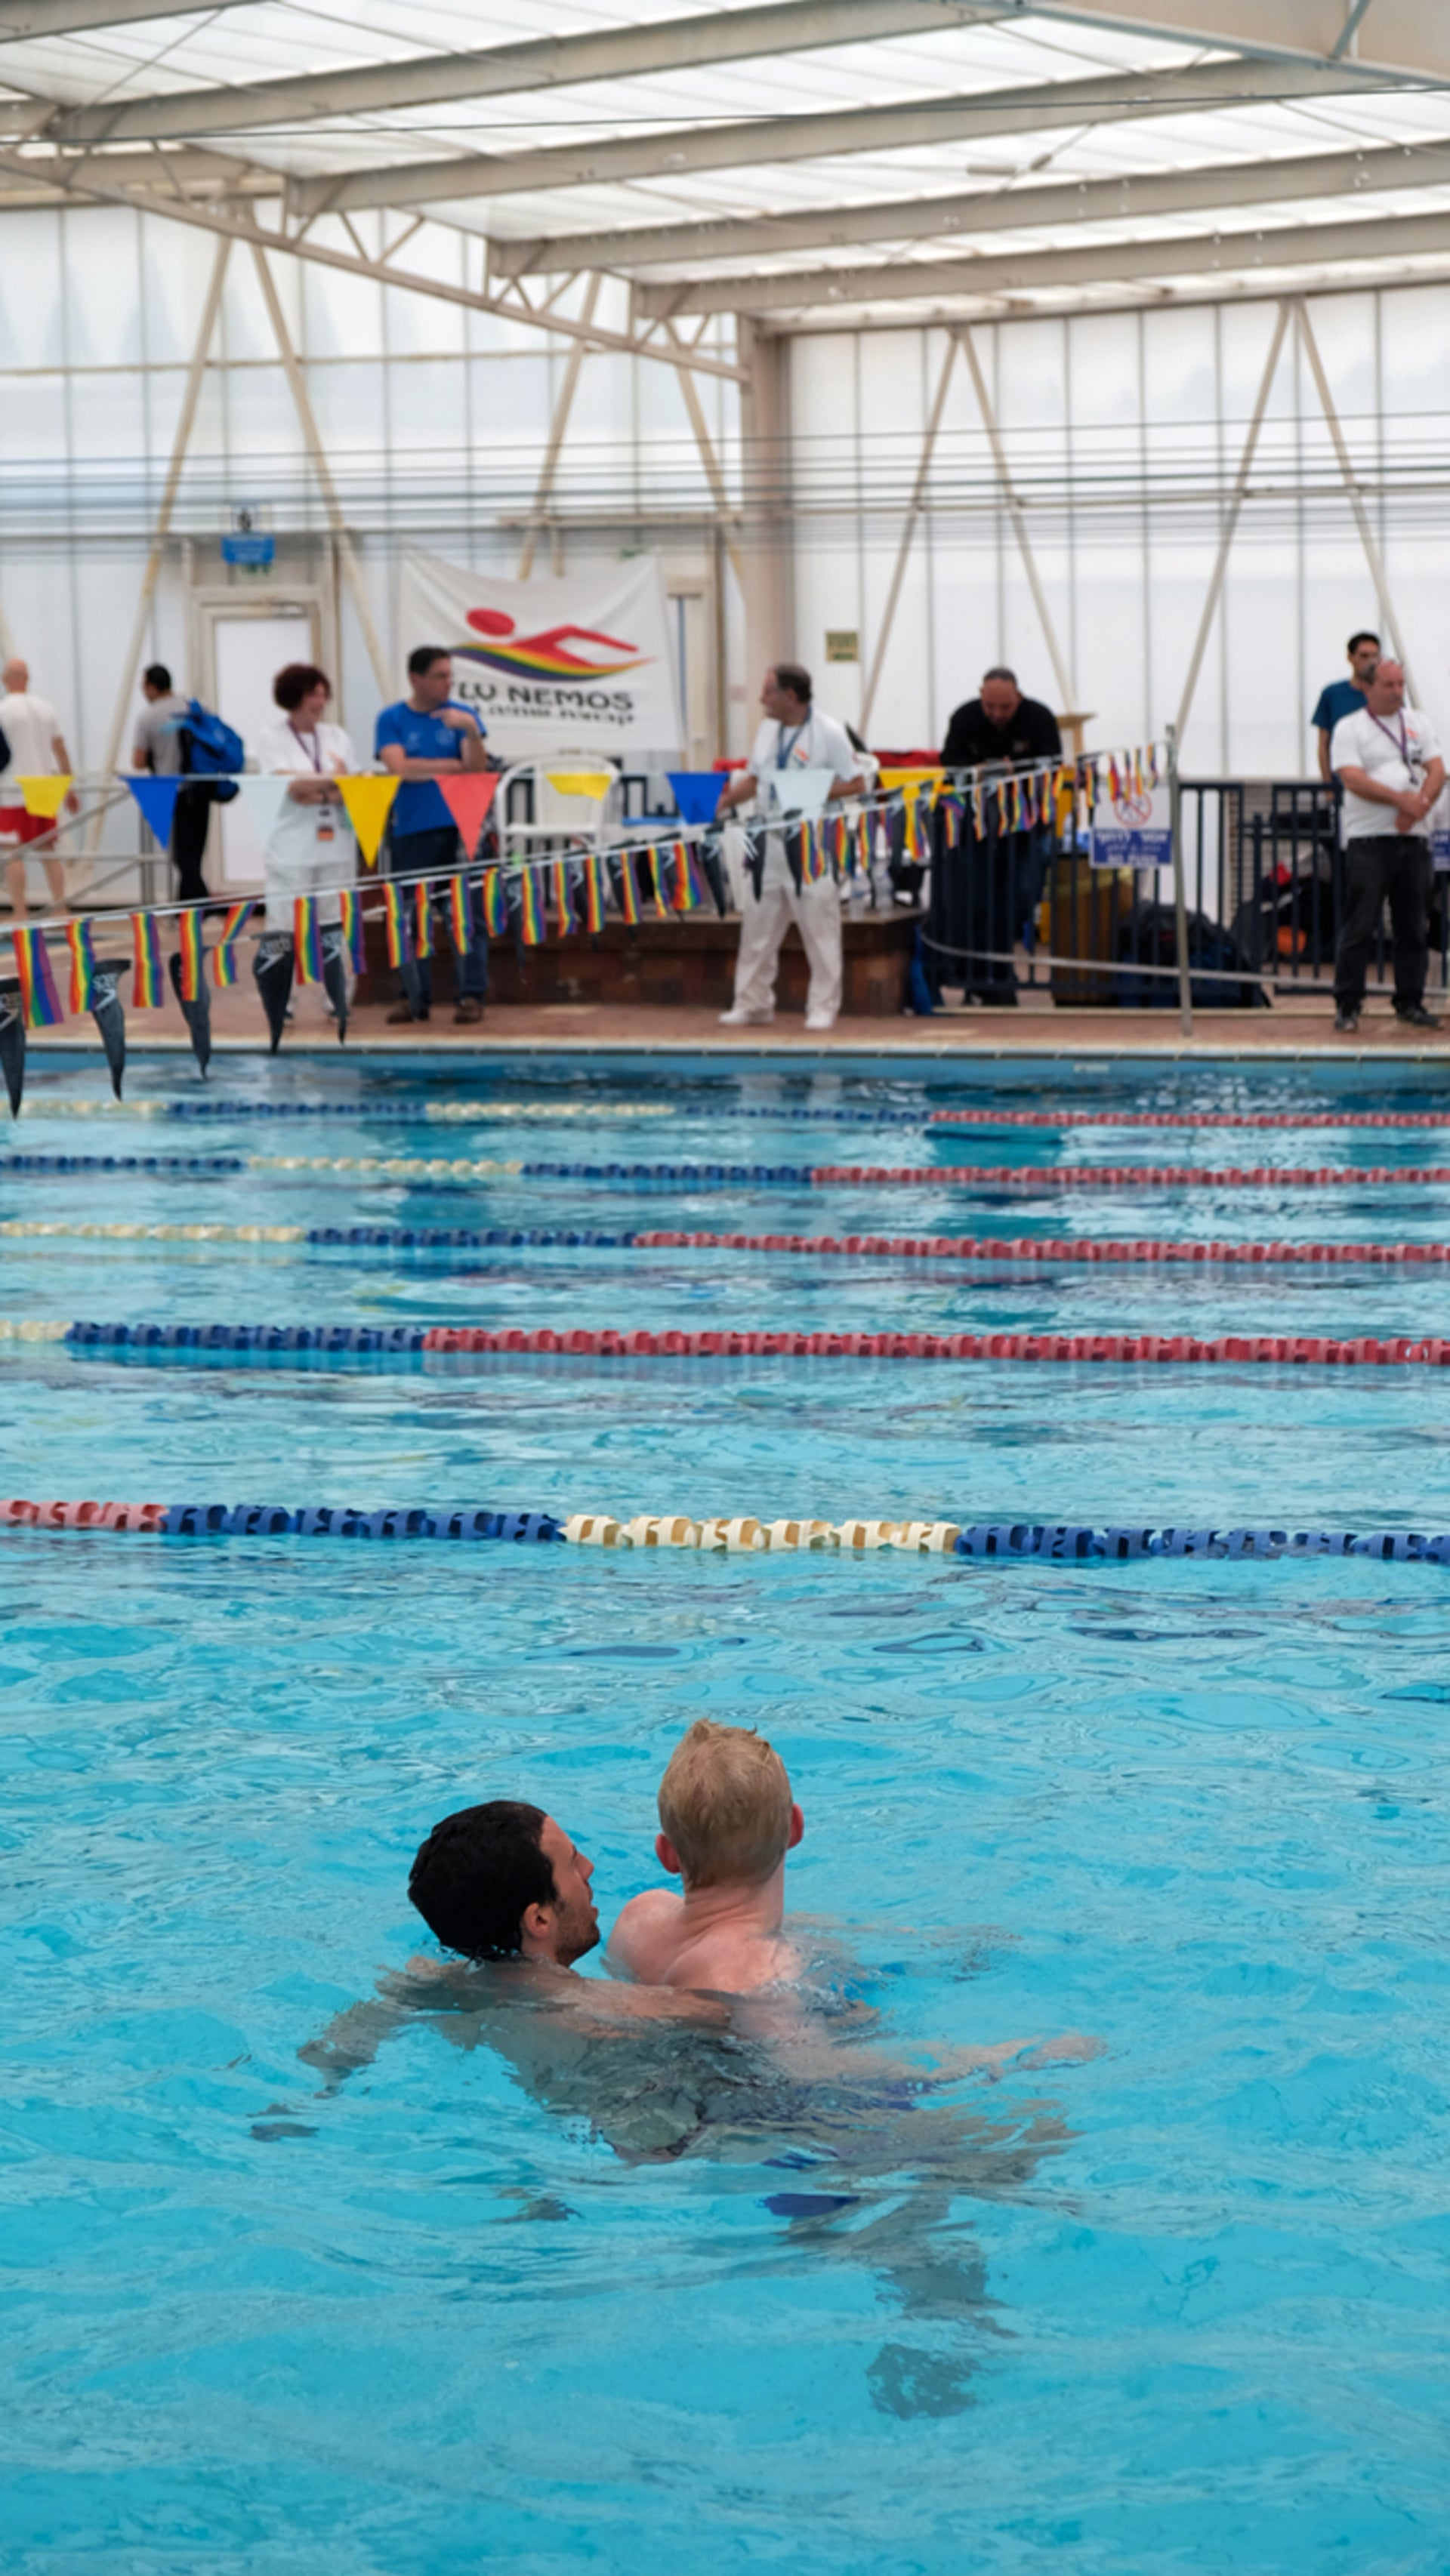 A single strand of gay pride flags strung alongside the Ramat Aviv pool was practically the only sign that something unusual was taking place there.